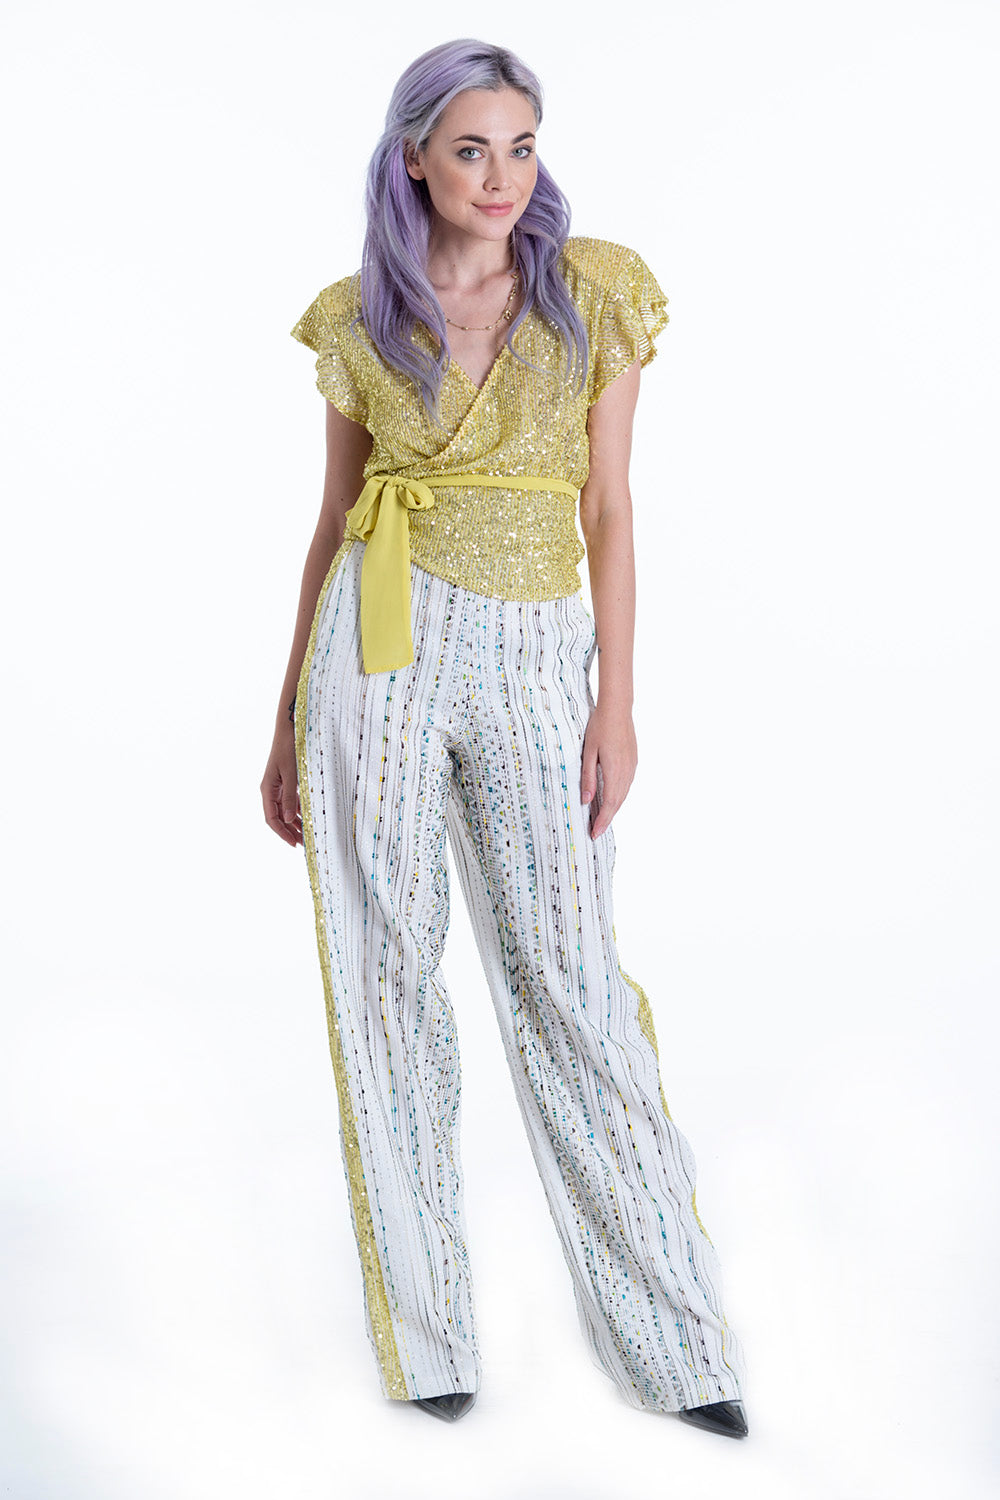 Anna Samouka metallic and sequin stripes wide leg trousers co-ord